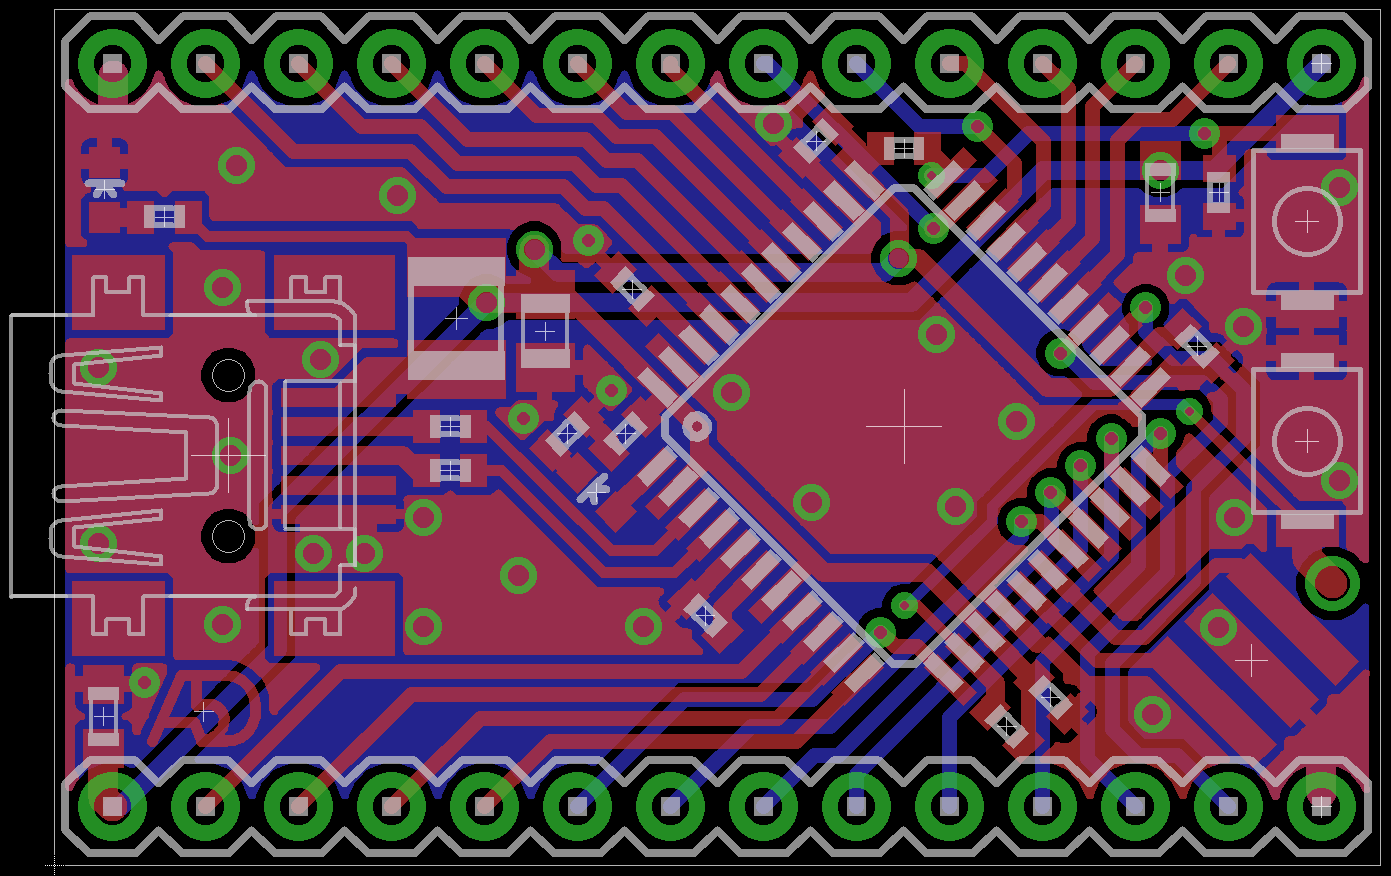 Atmegaxxu4 Development Board A5d Project Hub Assembled From Schematic 1 I Will Also Add Some Images Of The 2a Version Boards Ordered And Eagle Included Available For Download Here